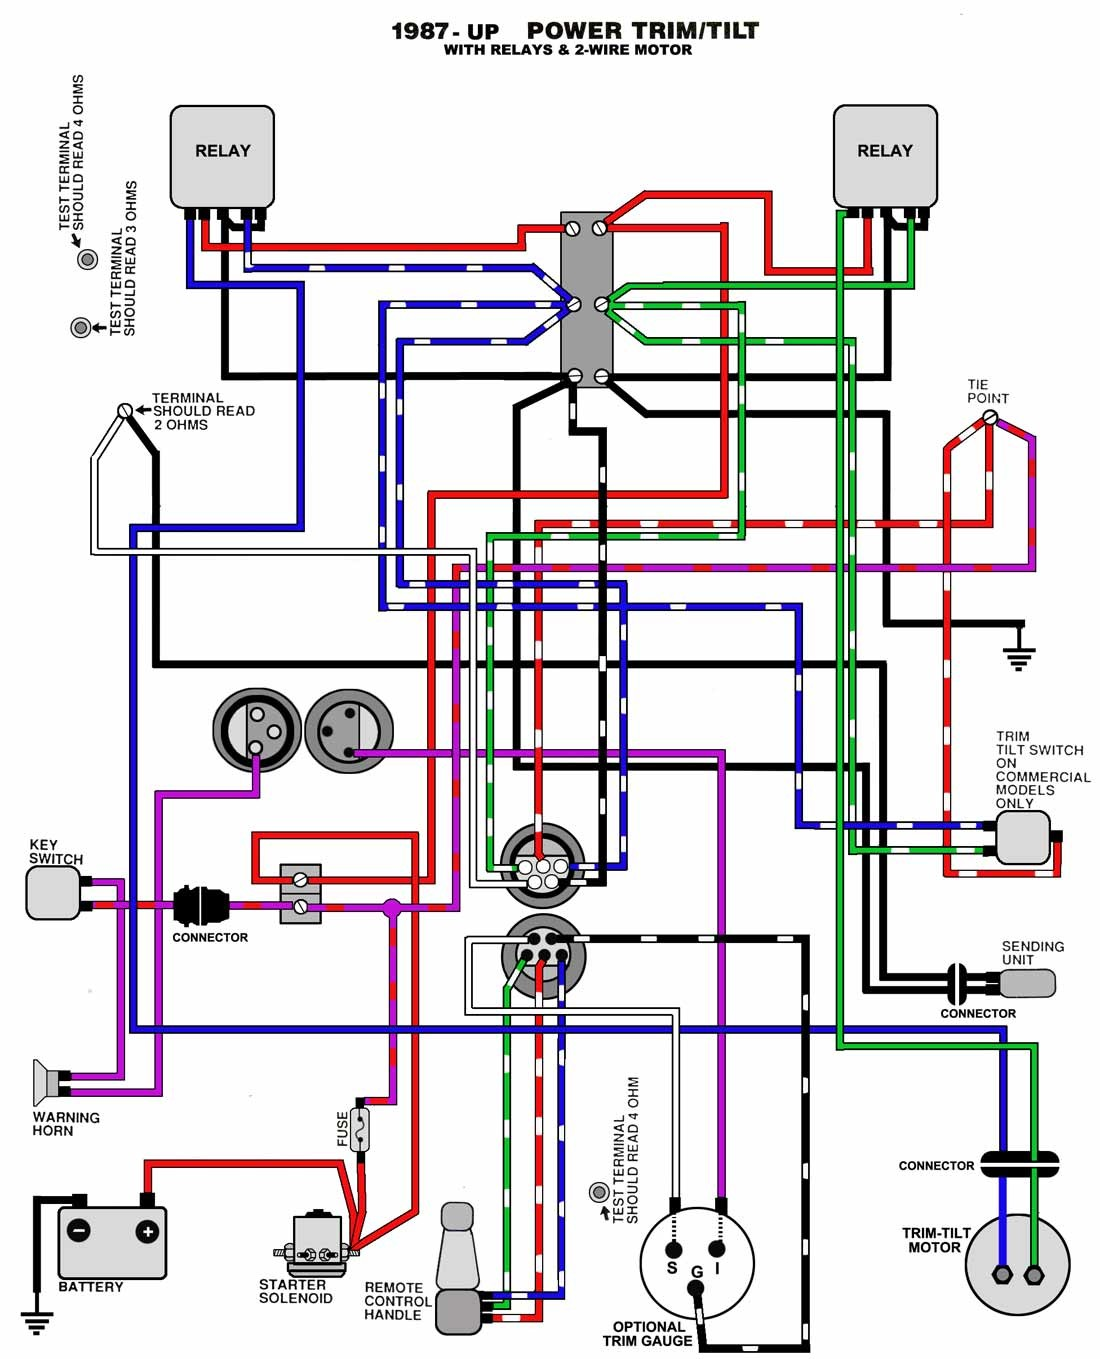 diagram also mercury outboard tilt trim wiring diagram on mercury rh lolinewr today For a 1989 Mercruiser Wiring Diagrams Shift Actuator Wiring Diagram for Mercruiser